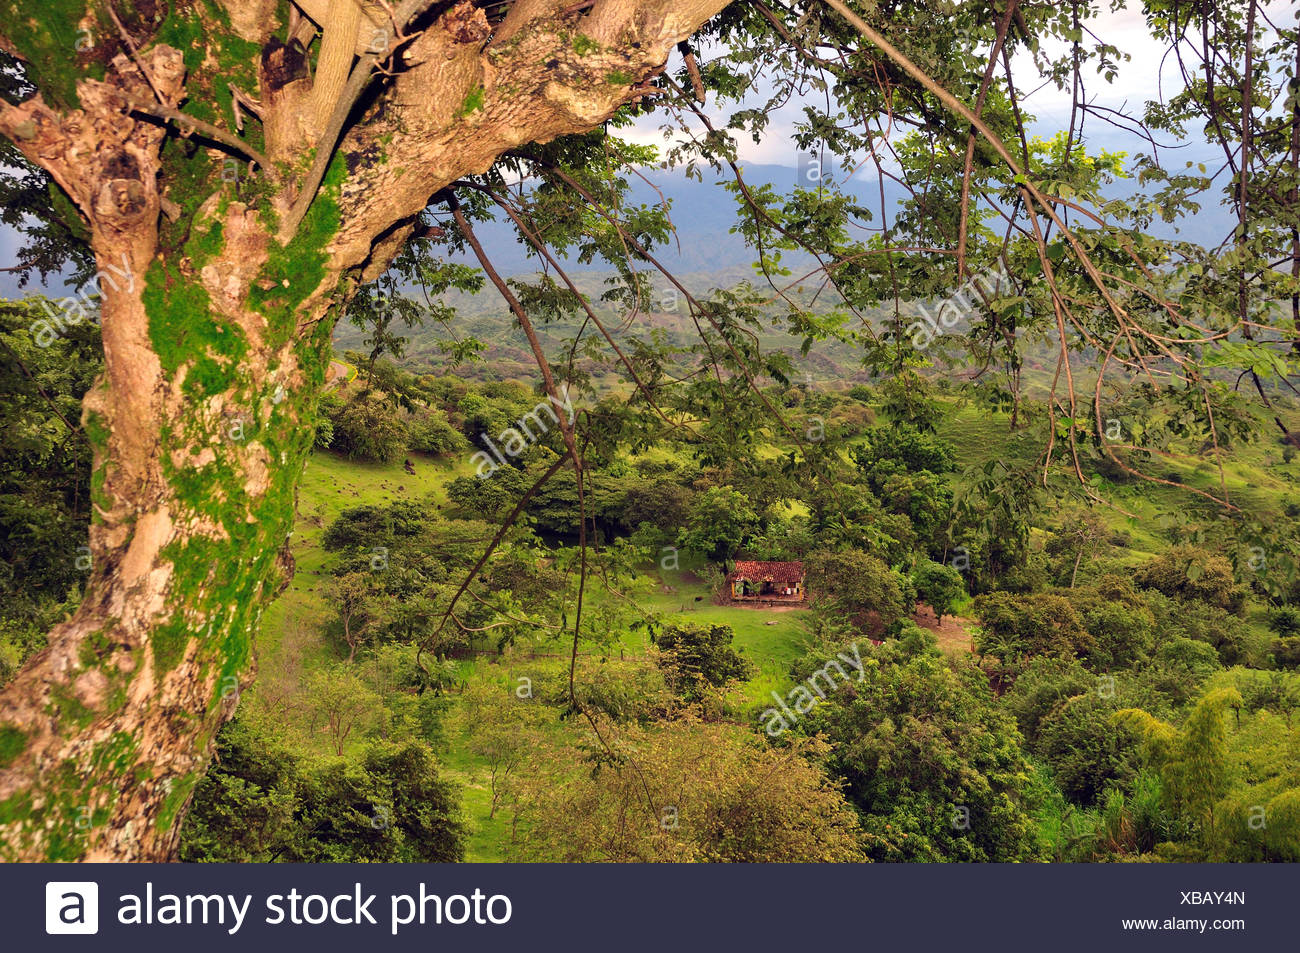 House, country, rural  andes, mountains, green, lush, sodden, Landscape, Popayan, Colombia, South America - Stock Image